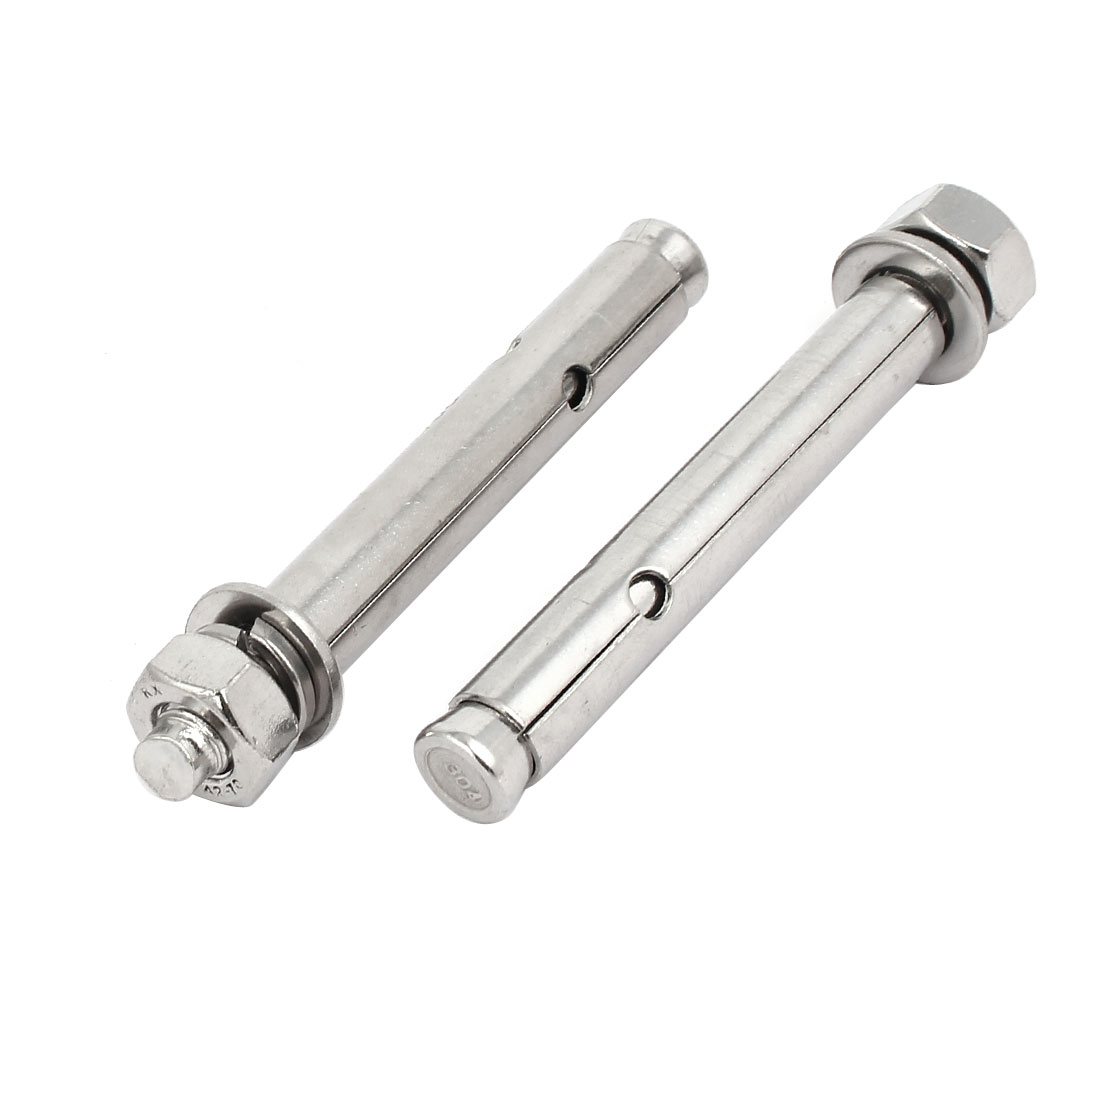 M10x100mm 304 Stainless Steel Air Condition Fitting Sleeve Anchor Expansion Bolt 2pcs